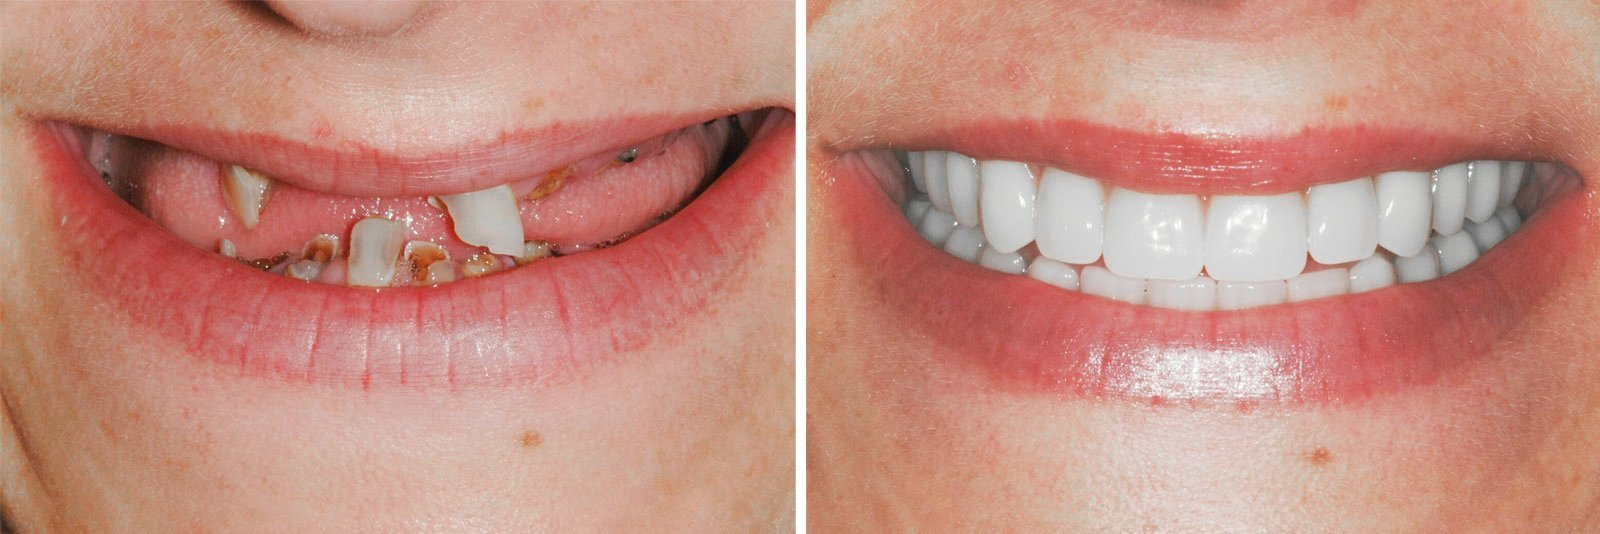 smile-makeover-dental-implants-before-and-after